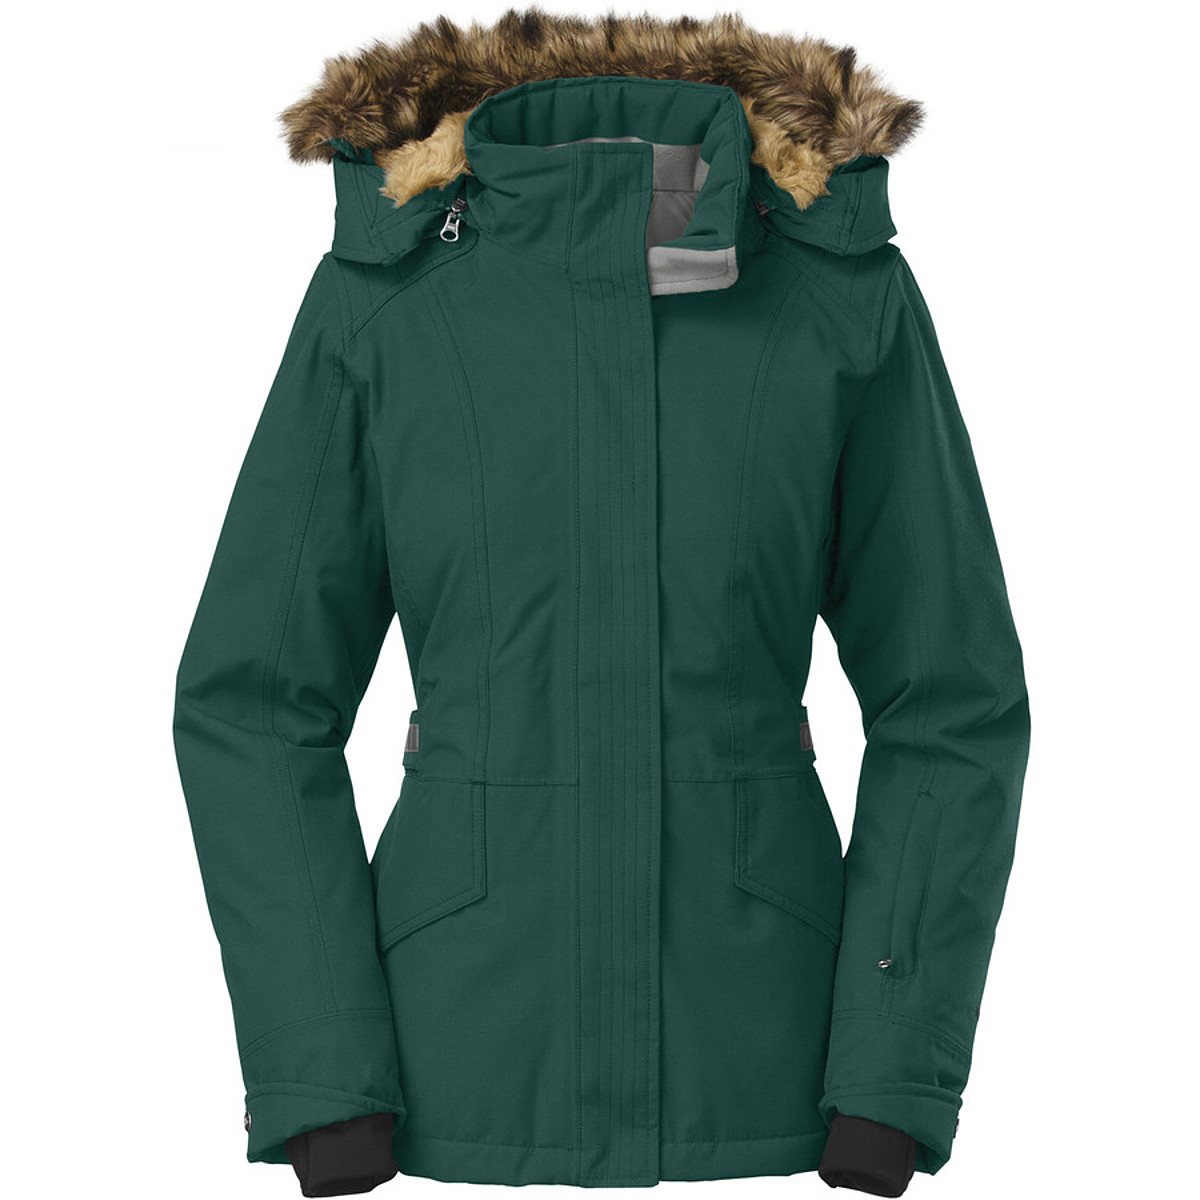 The North Face Tremaya Crop Jacket